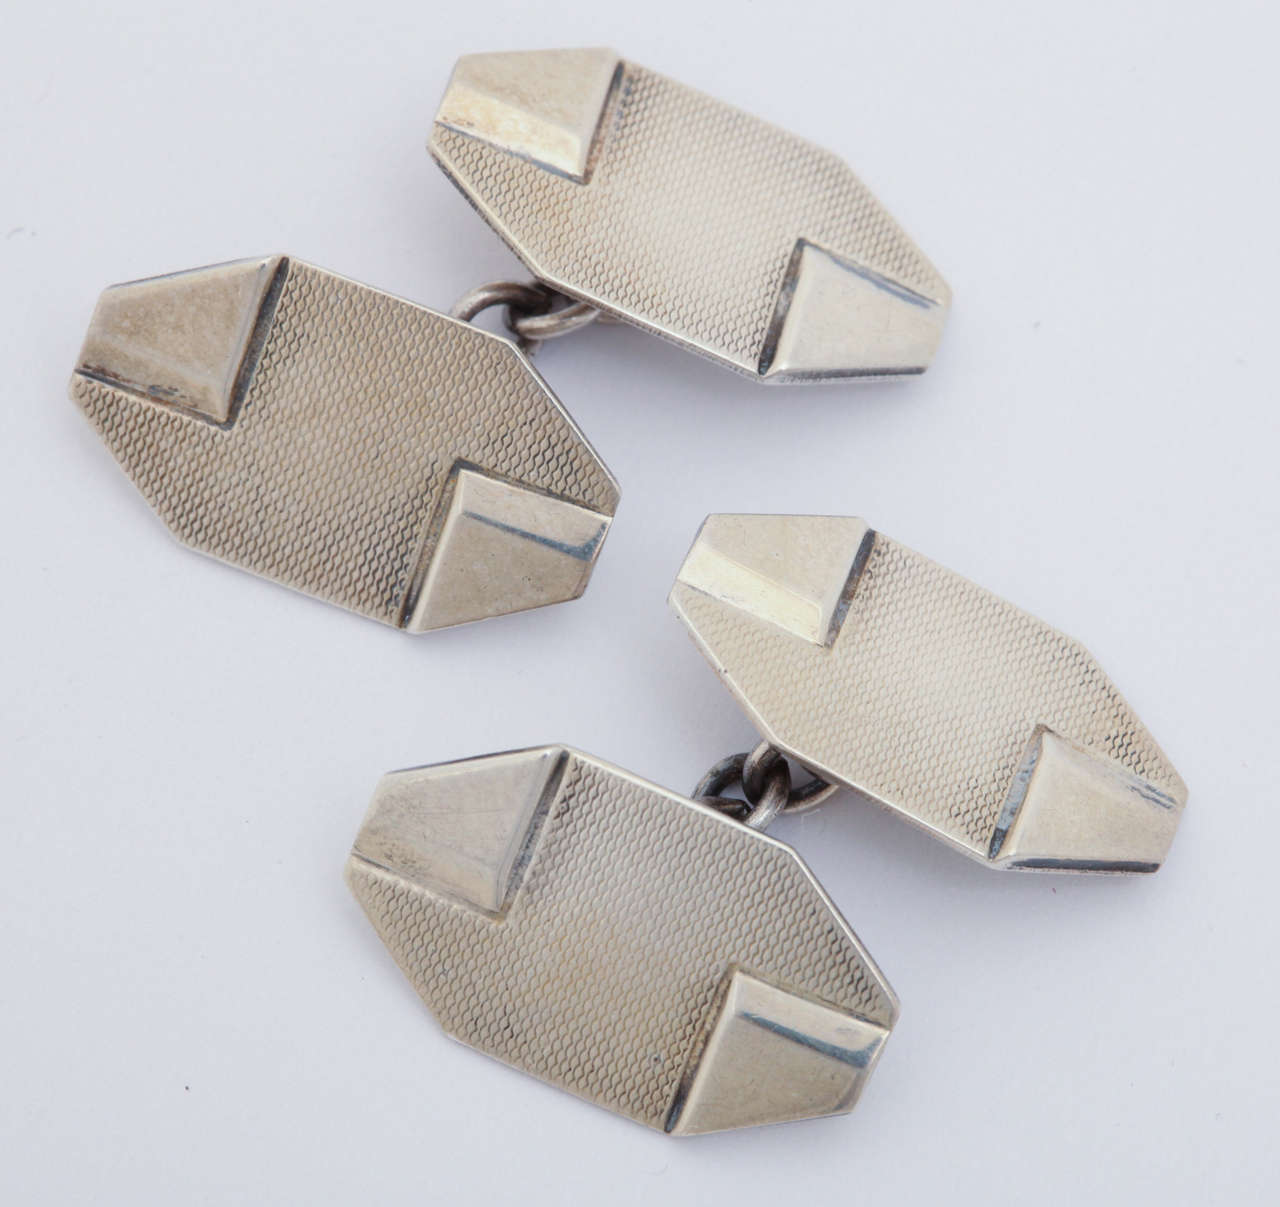 1920s-1930s Art Deco Silver Cufflinks In Excellent Condition For Sale In New York, NY